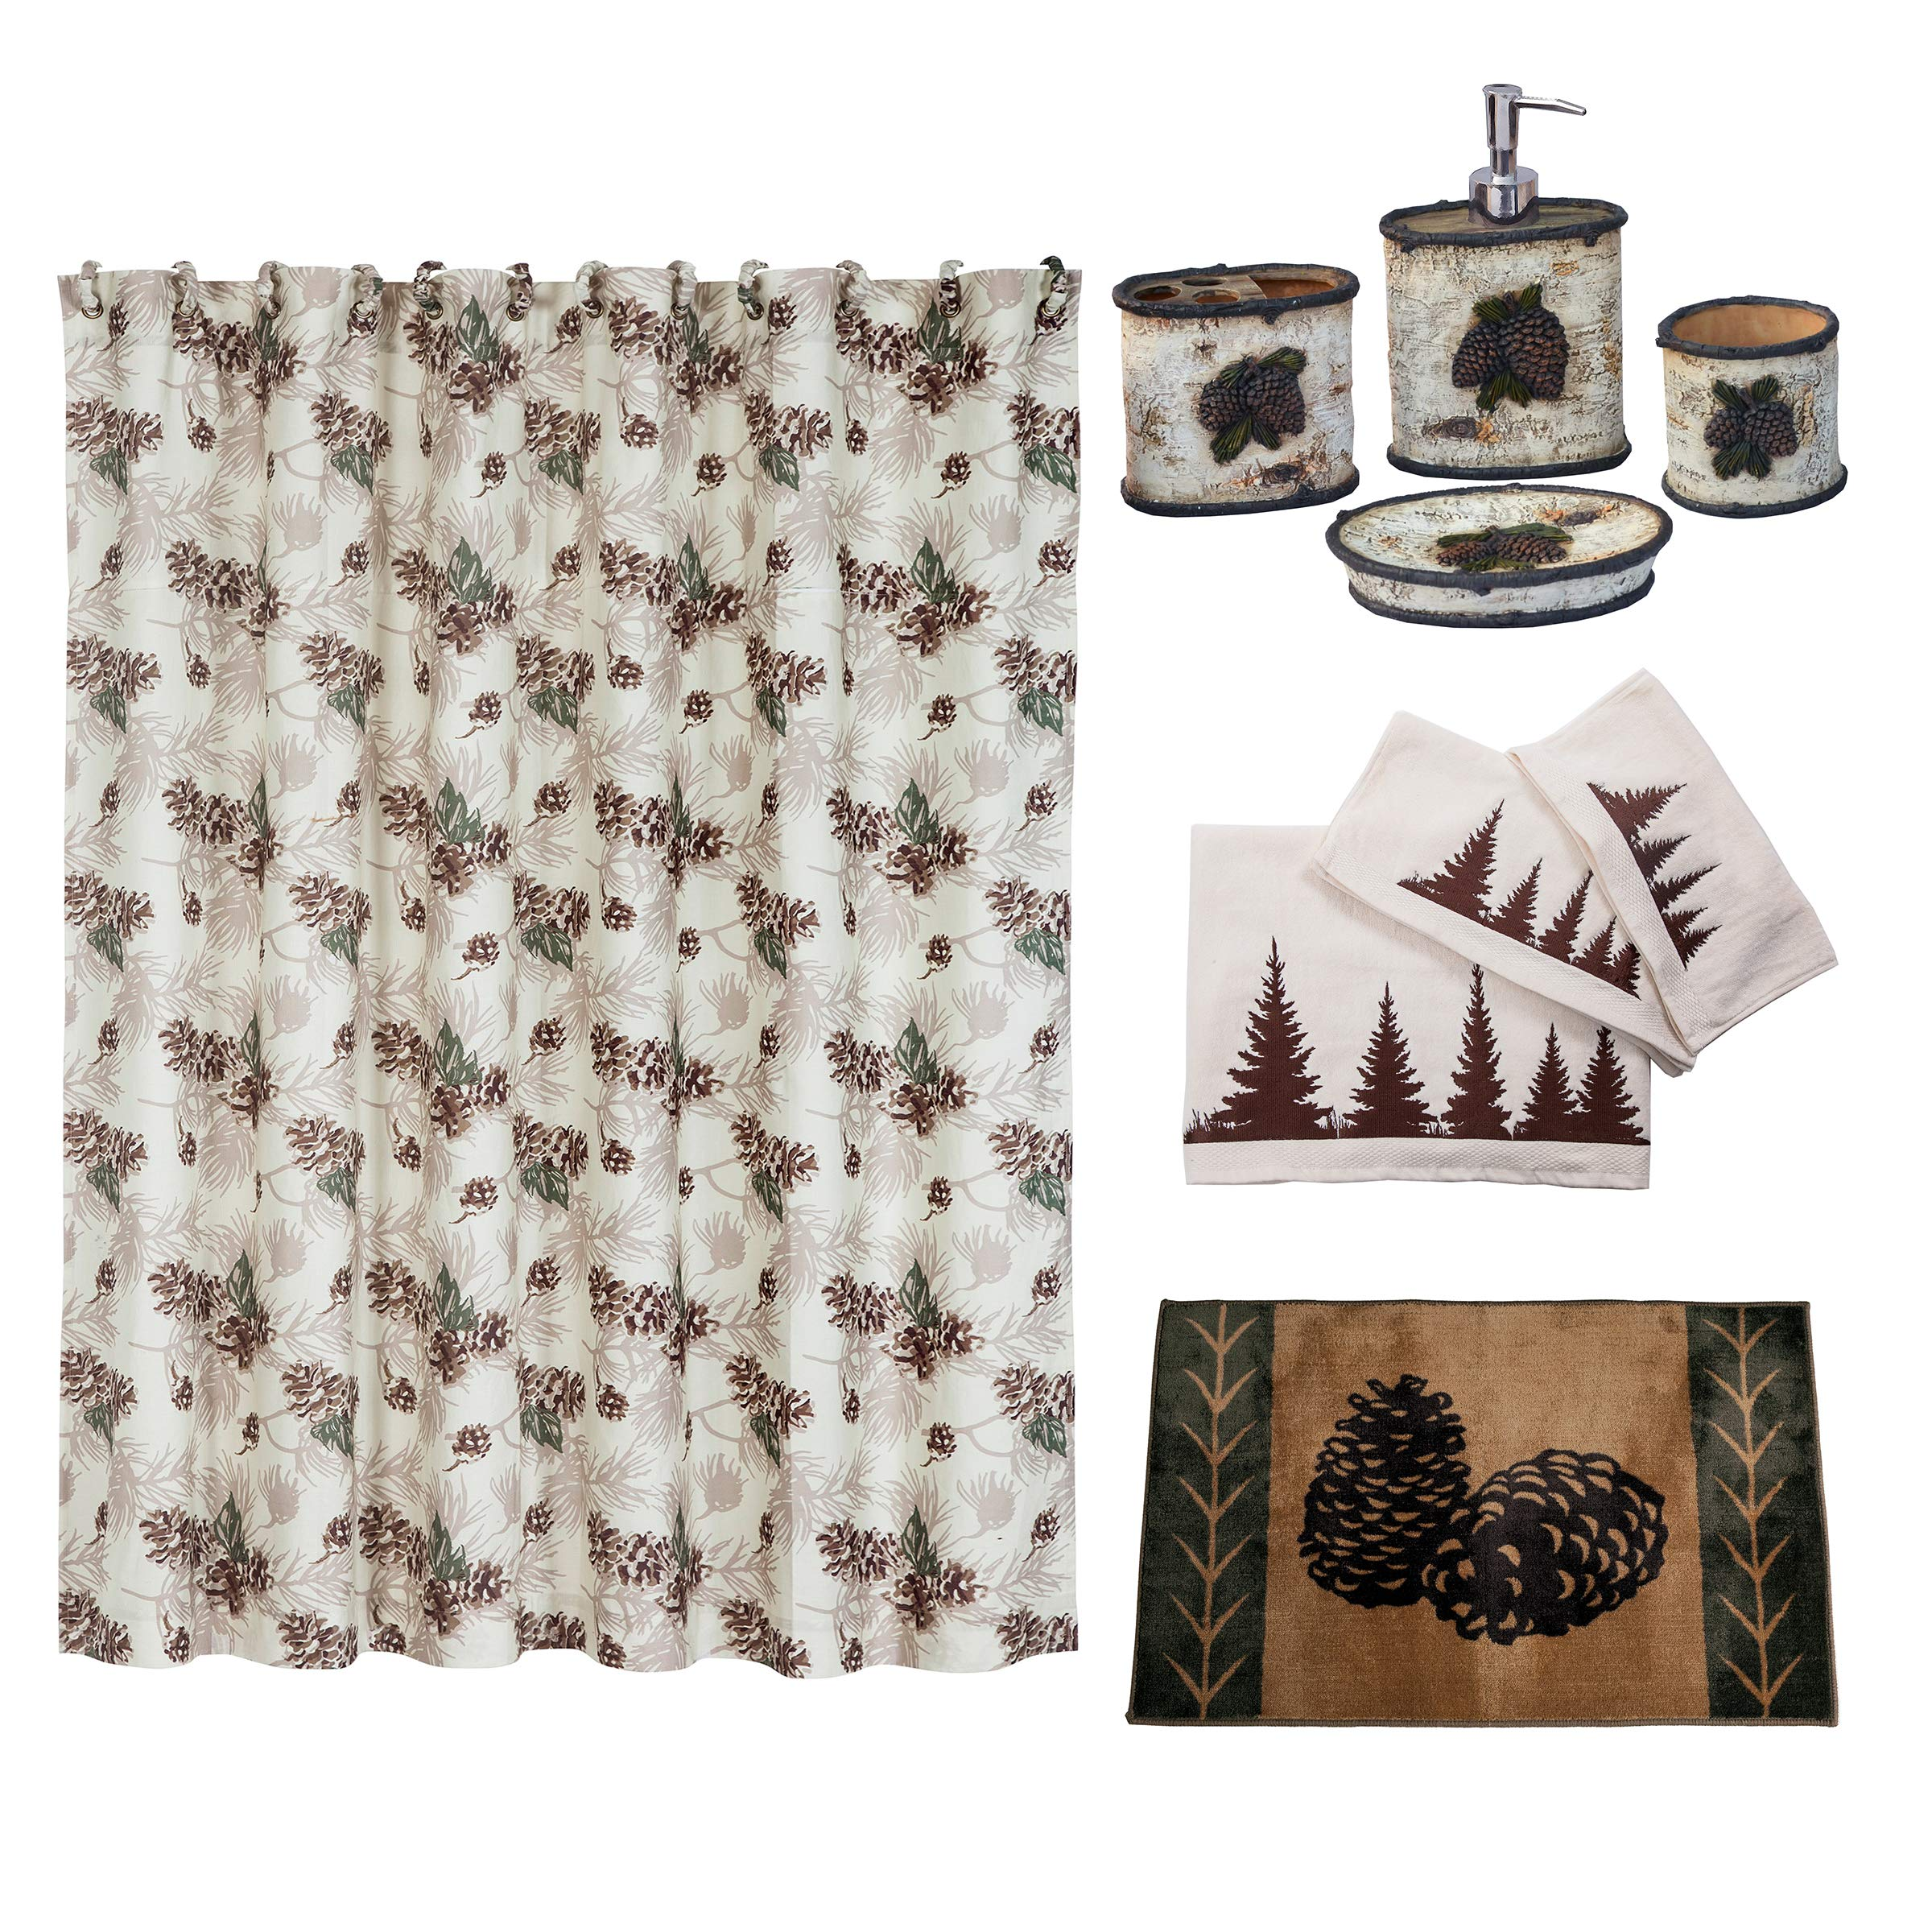 HiEnd Accents Forest Pine Lodge 21-Piece Bathroom, Shower Curtain Hook, Bath Accessory, Rug, Towel Set, Green